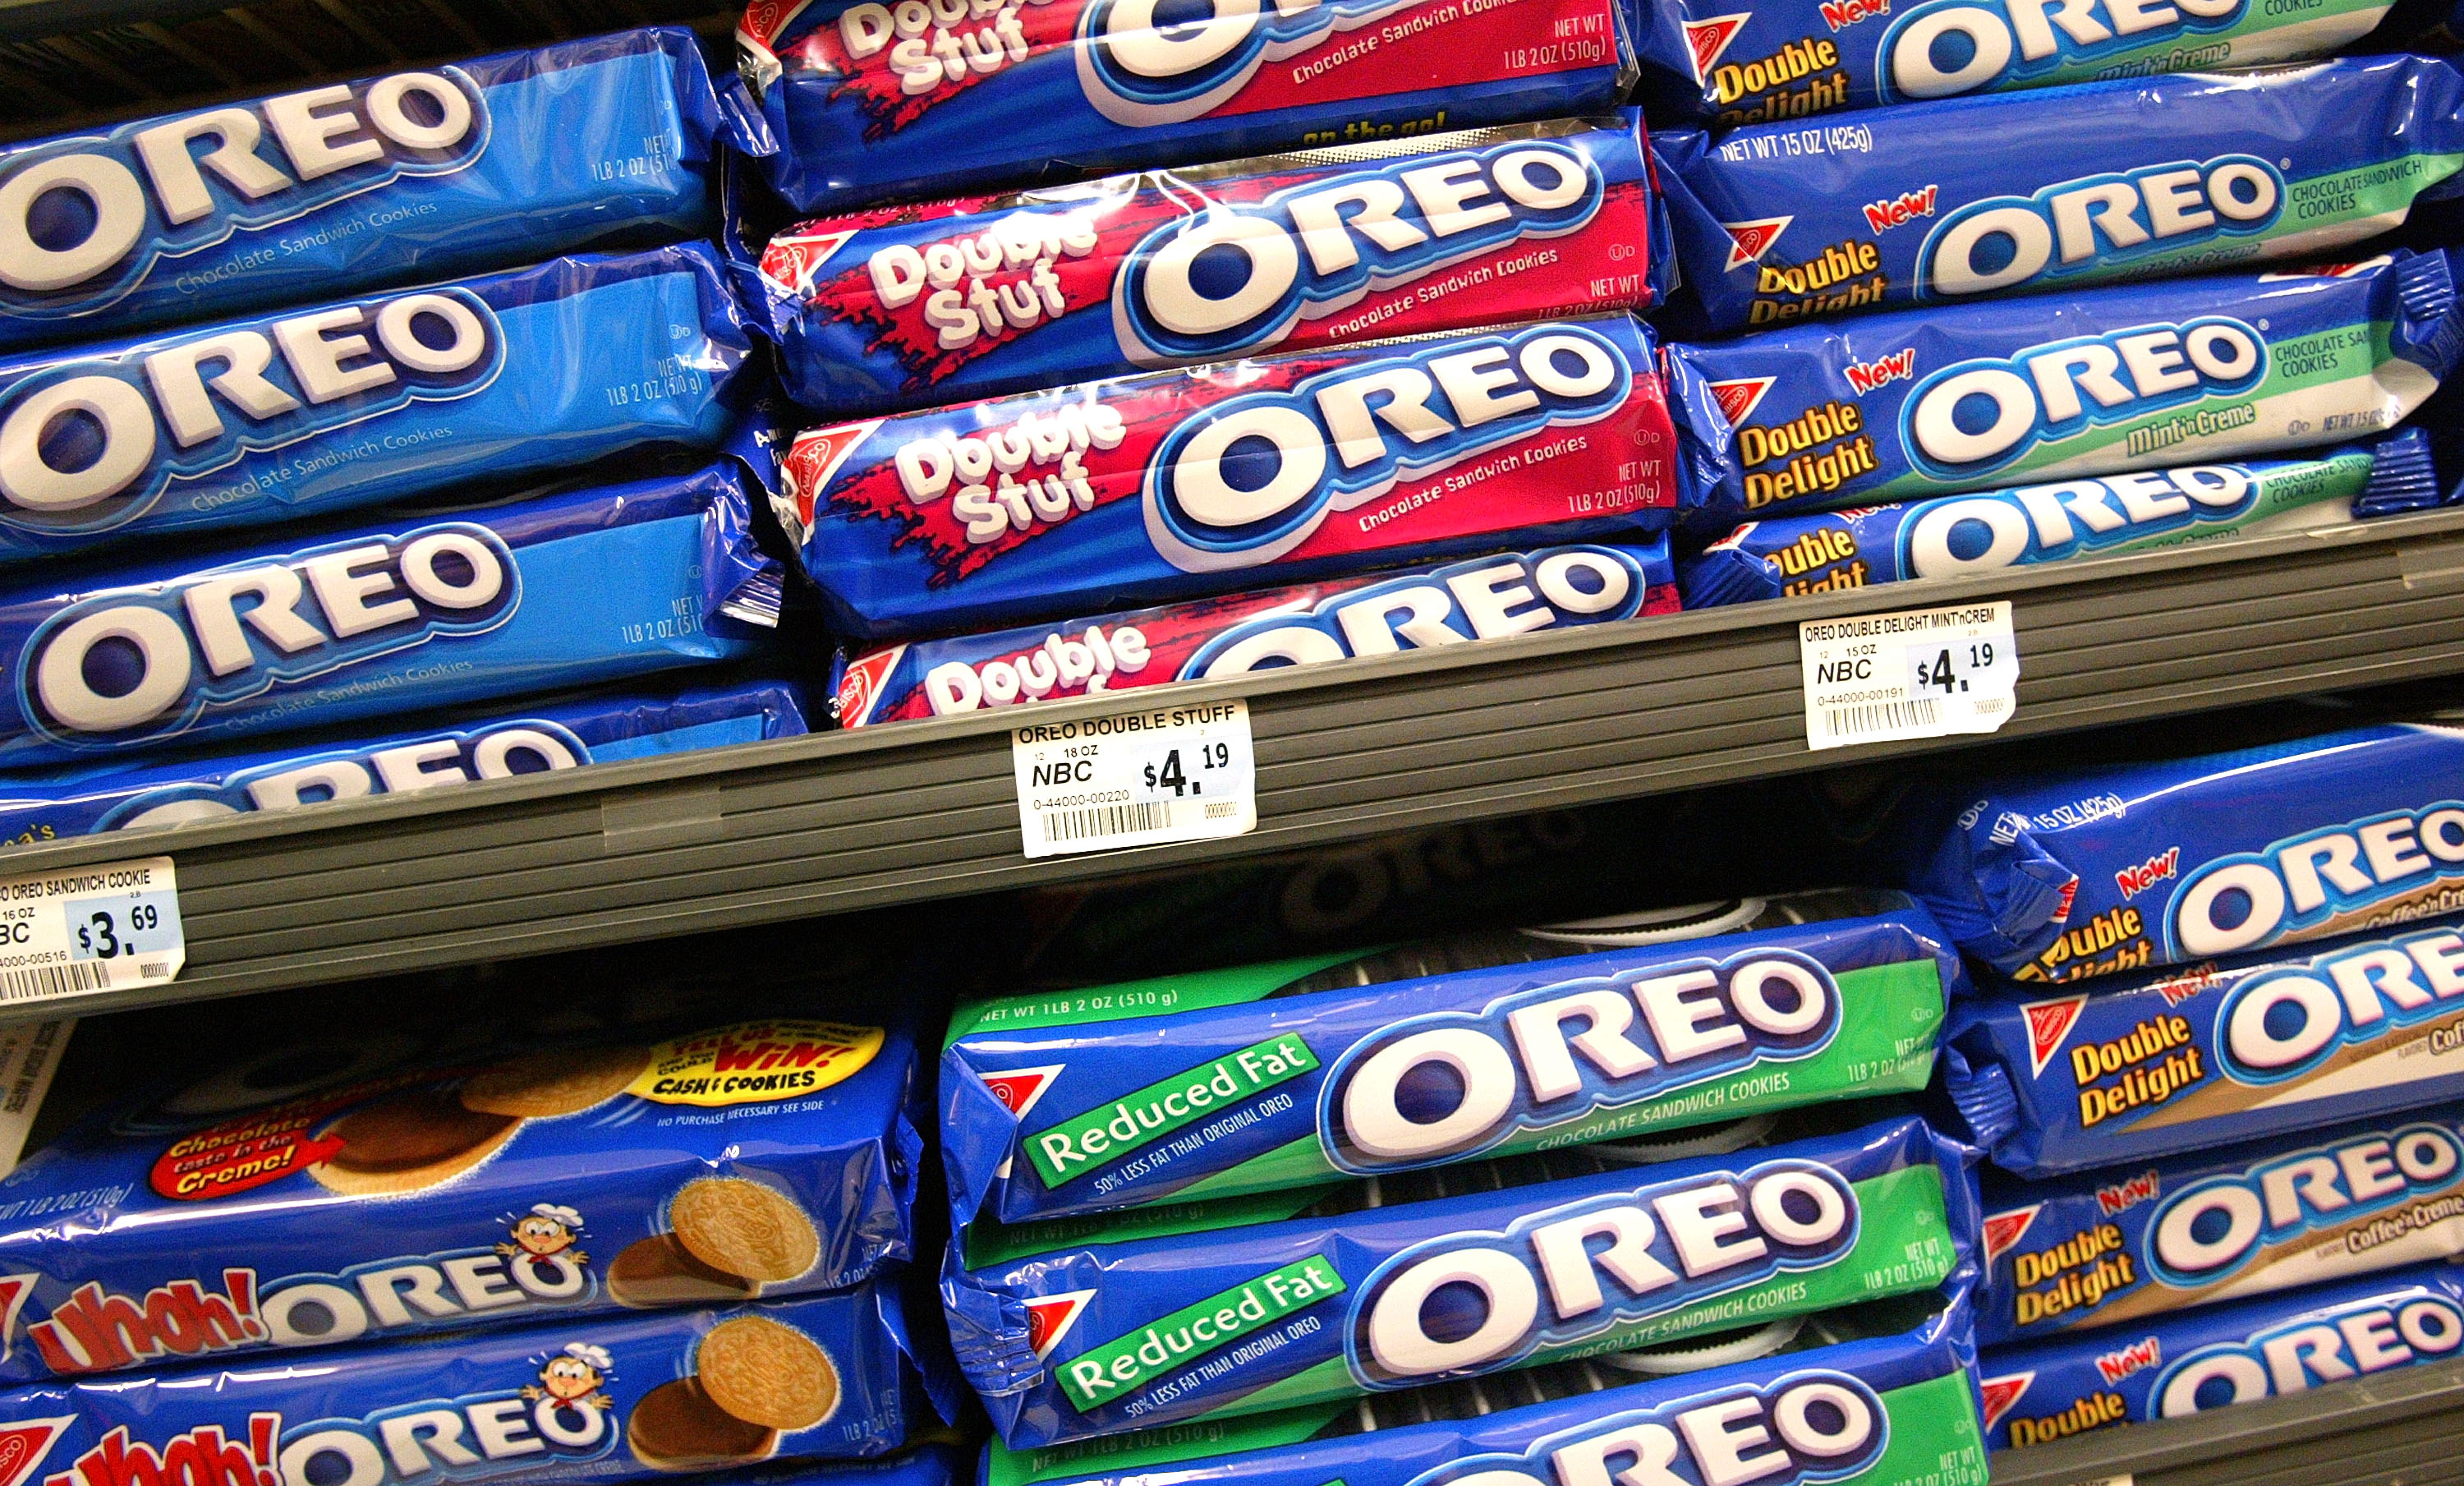 Oreo Cookies are seen May 13, 2003 in San Francisco.